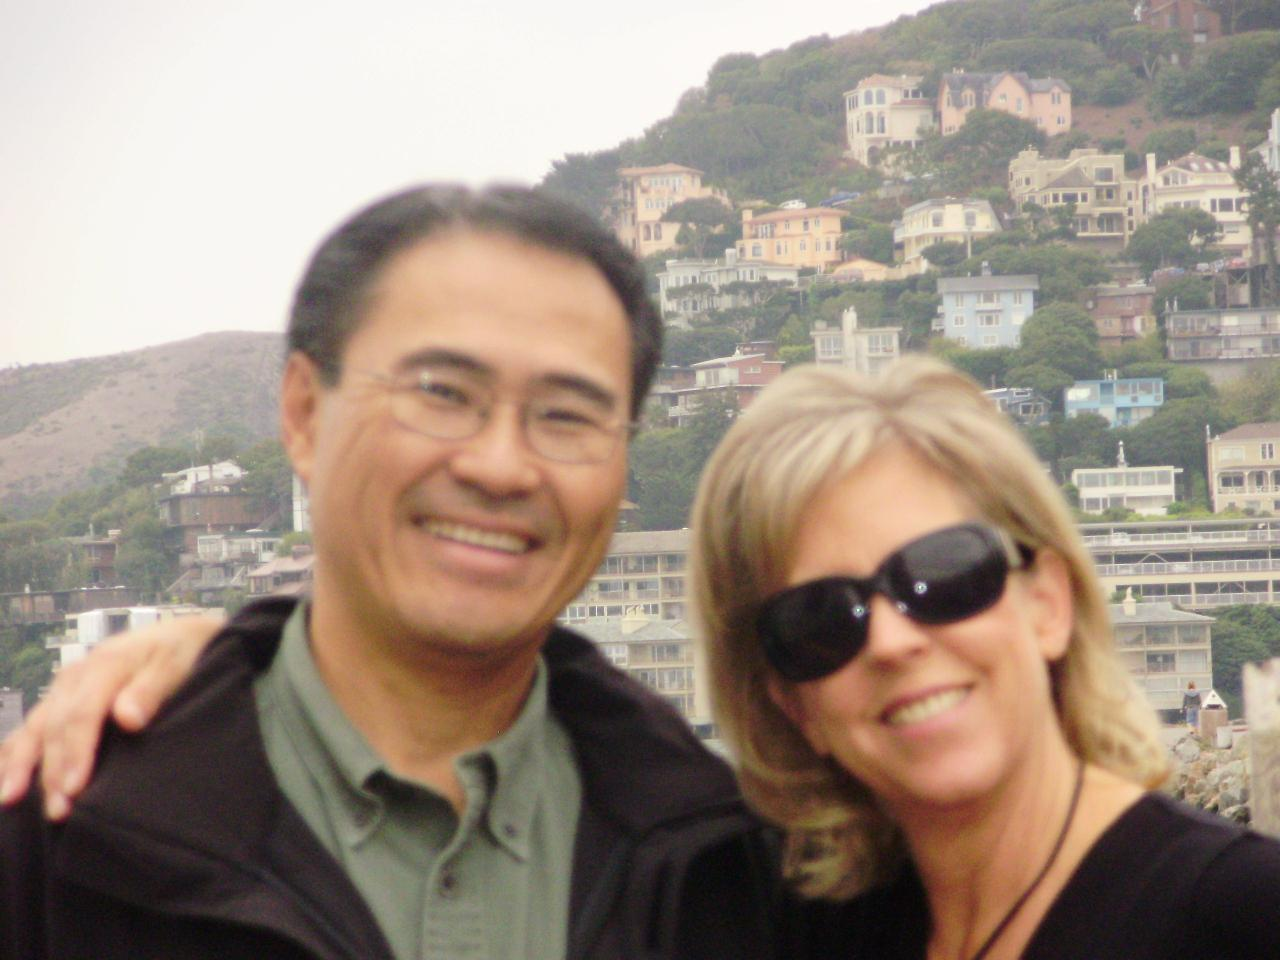 Remembering our first trip to Sausalito